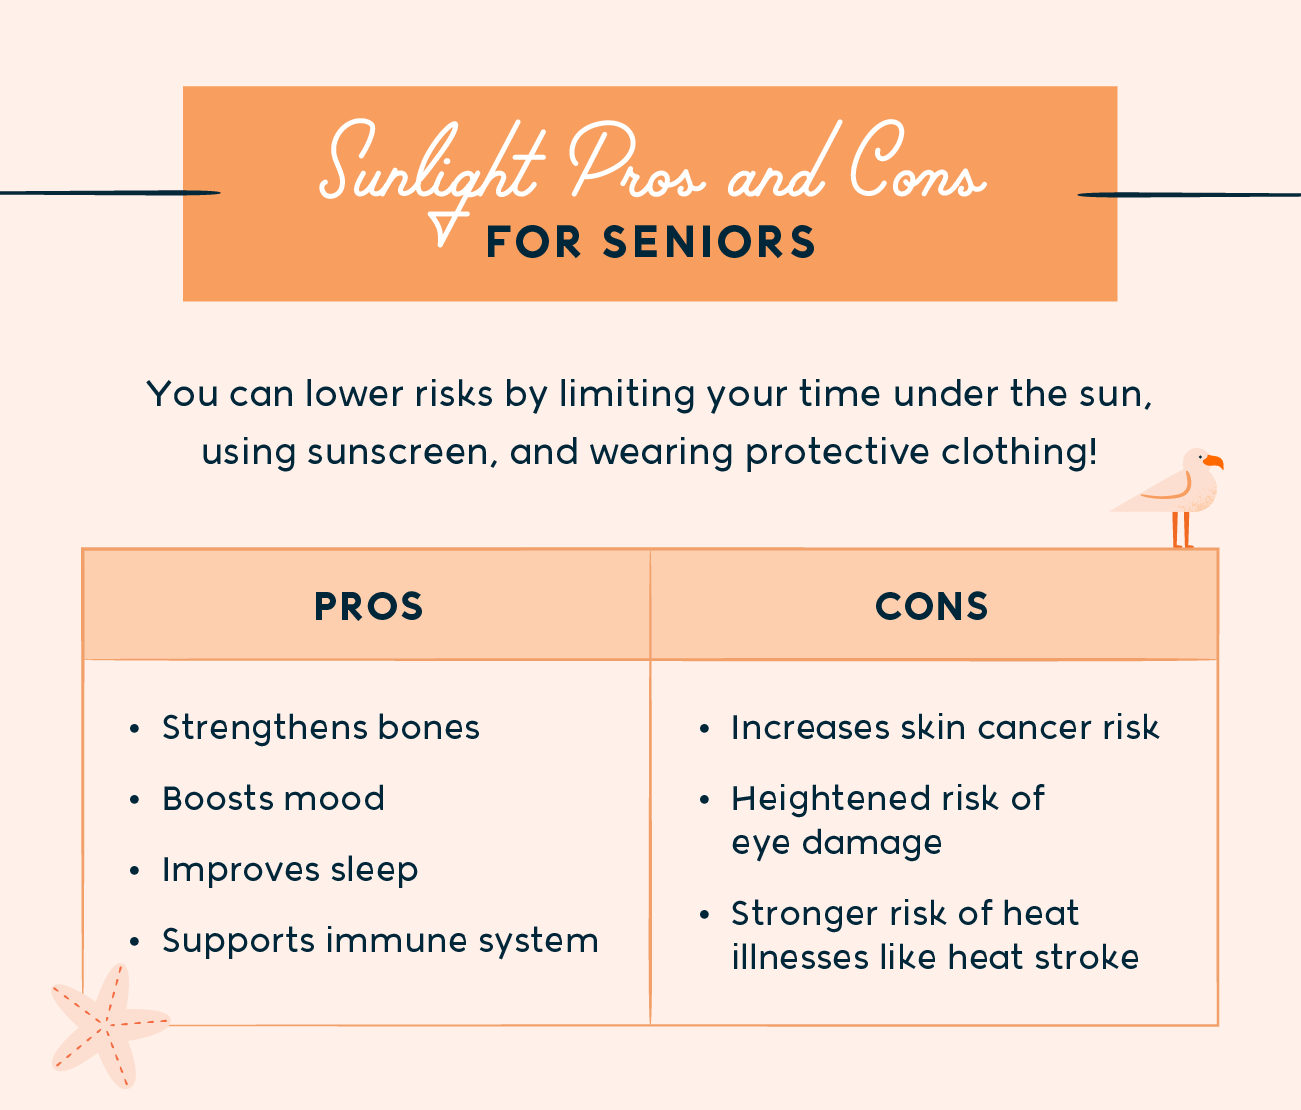 sunlight pros and cons for seniors